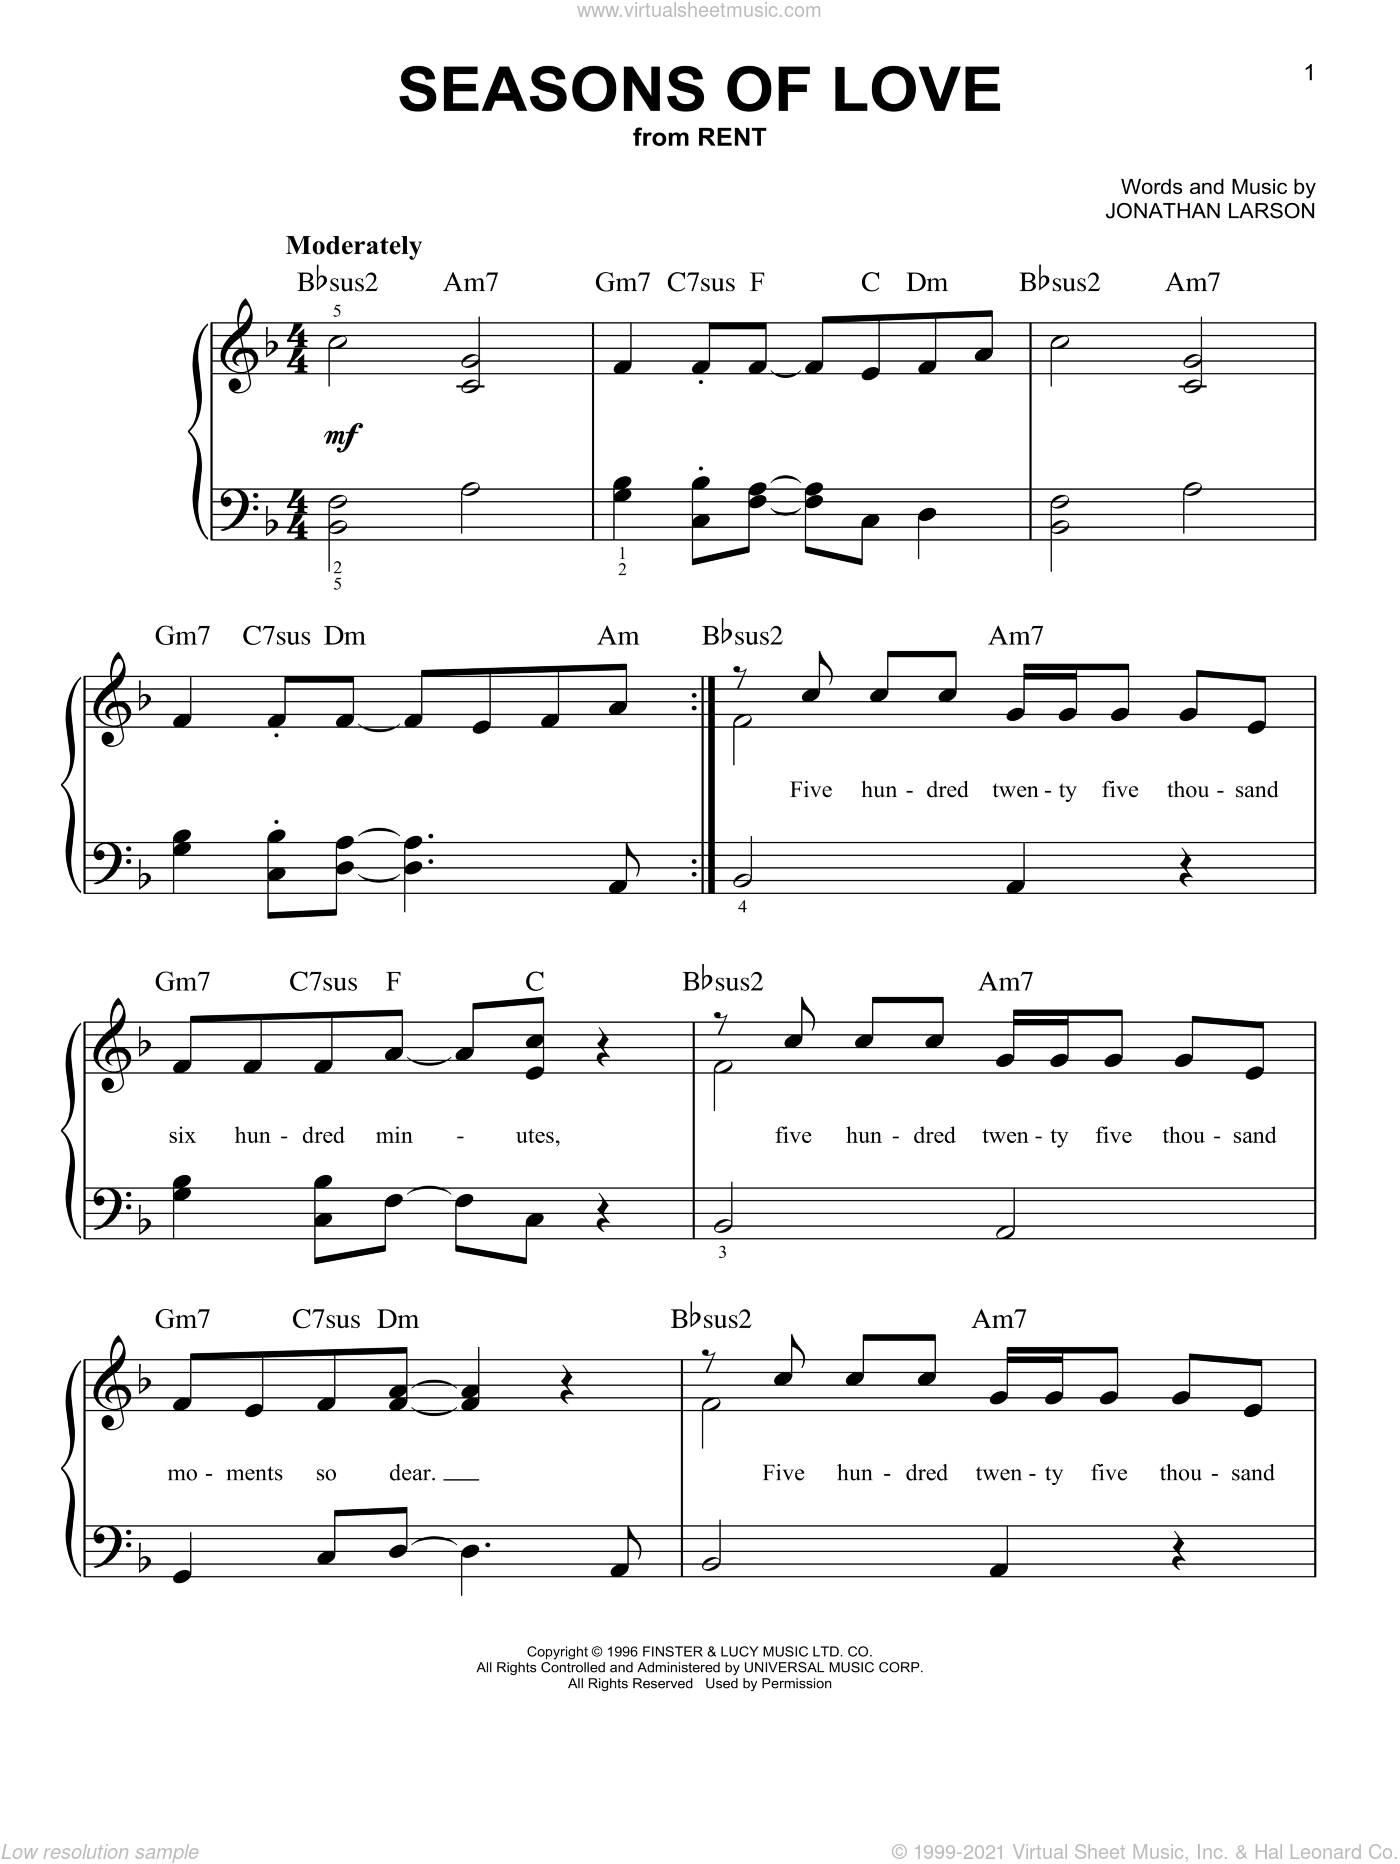 Seasons Of Love sheet music for piano solo by Jonathan Larson